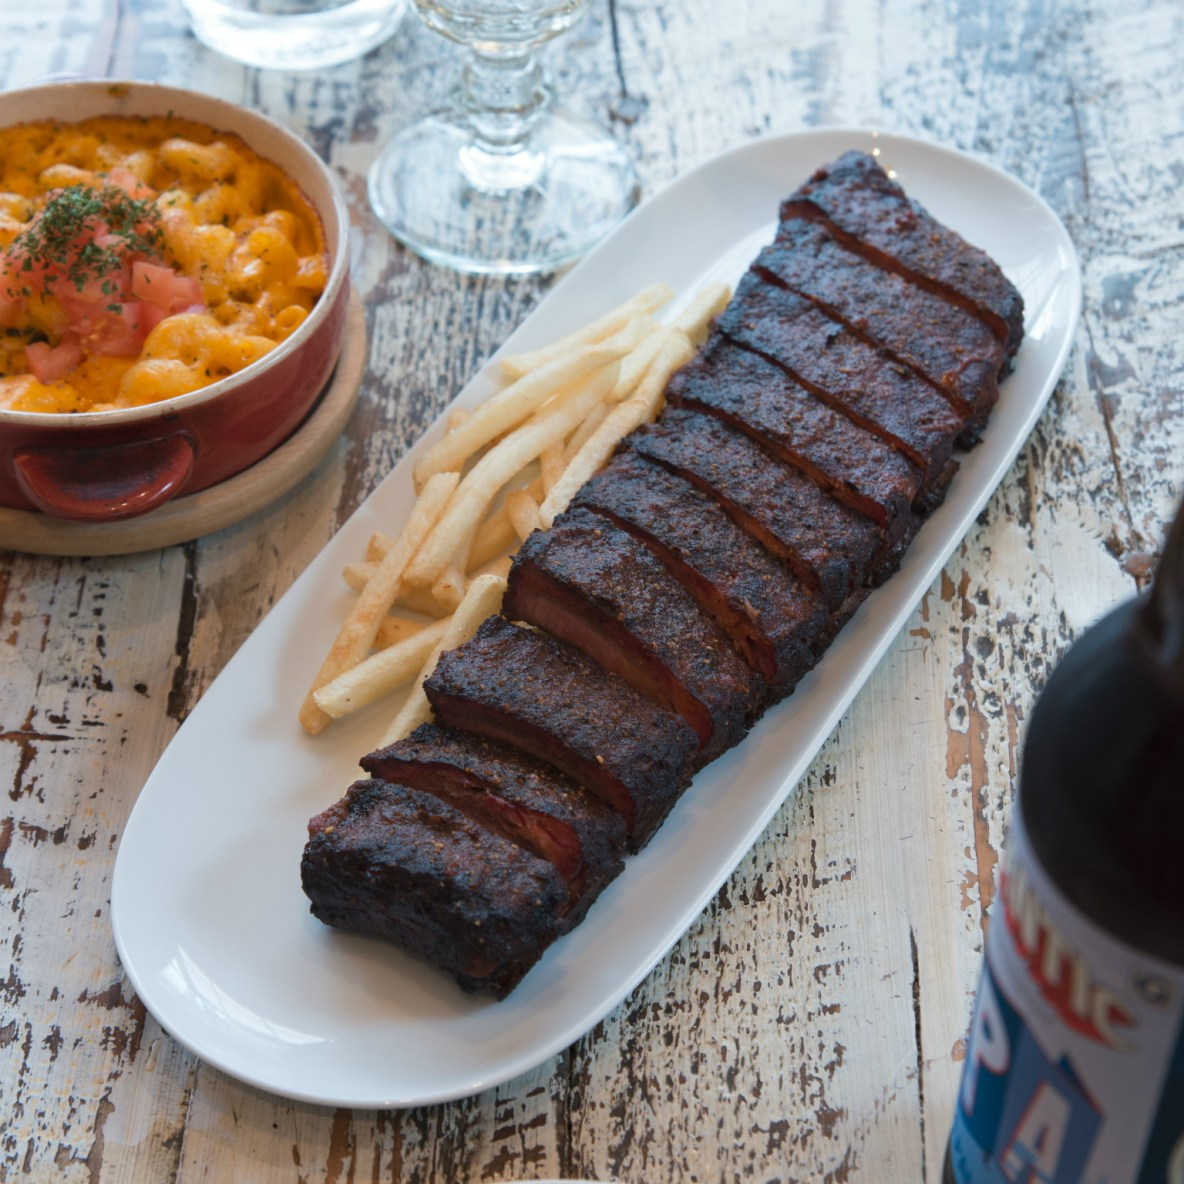 Ribs, brisket and craft beer at an accidental chef's laid-back barbecue